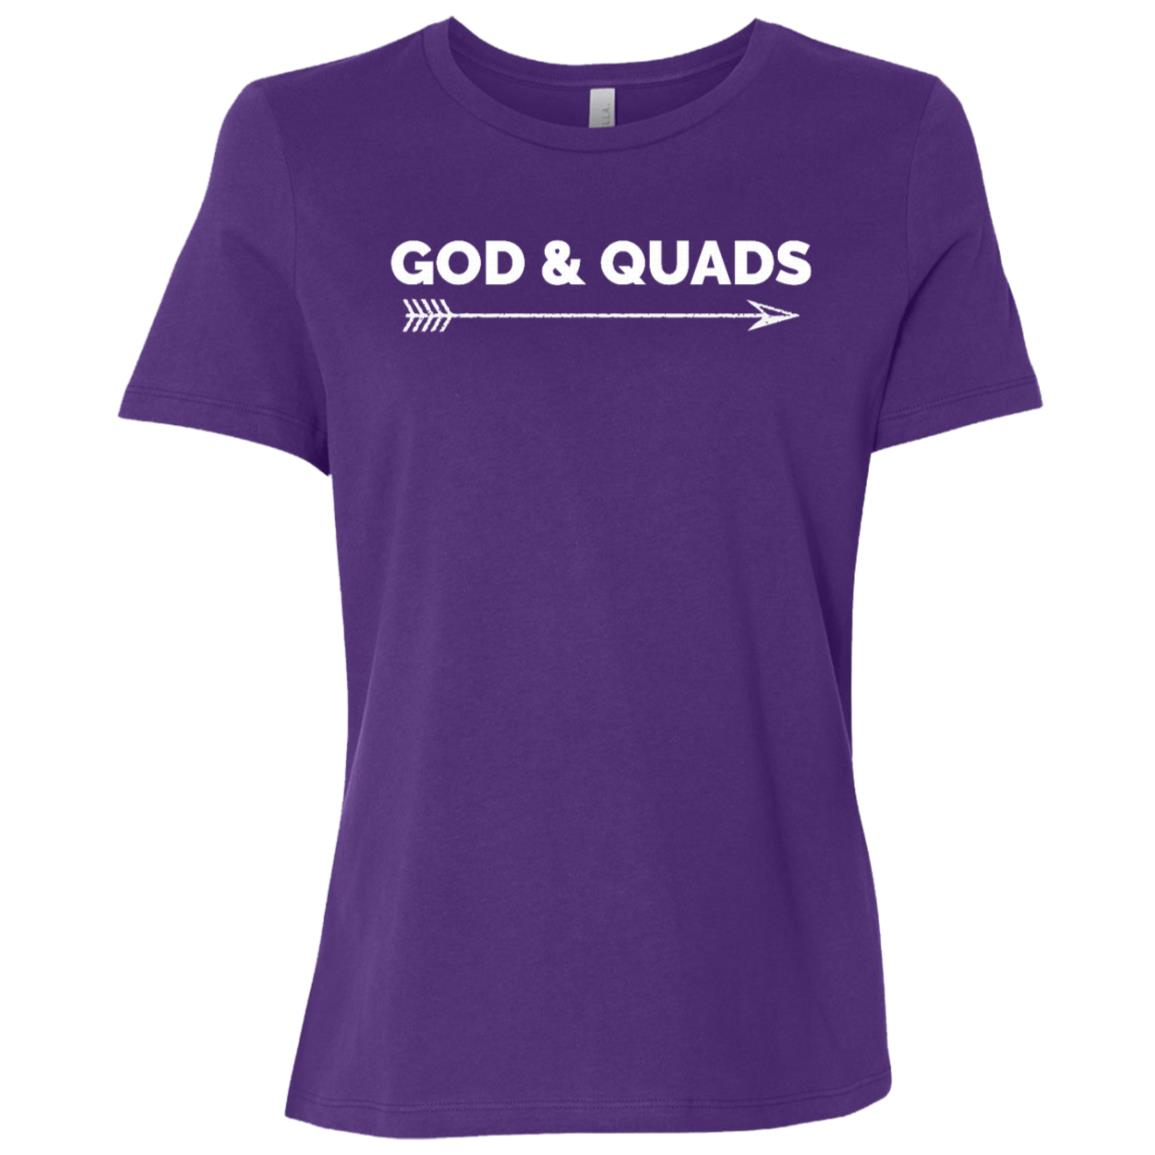 God & Quads! Funny Christian Workout Gym Gift Women Short Sleeve T-Shirt